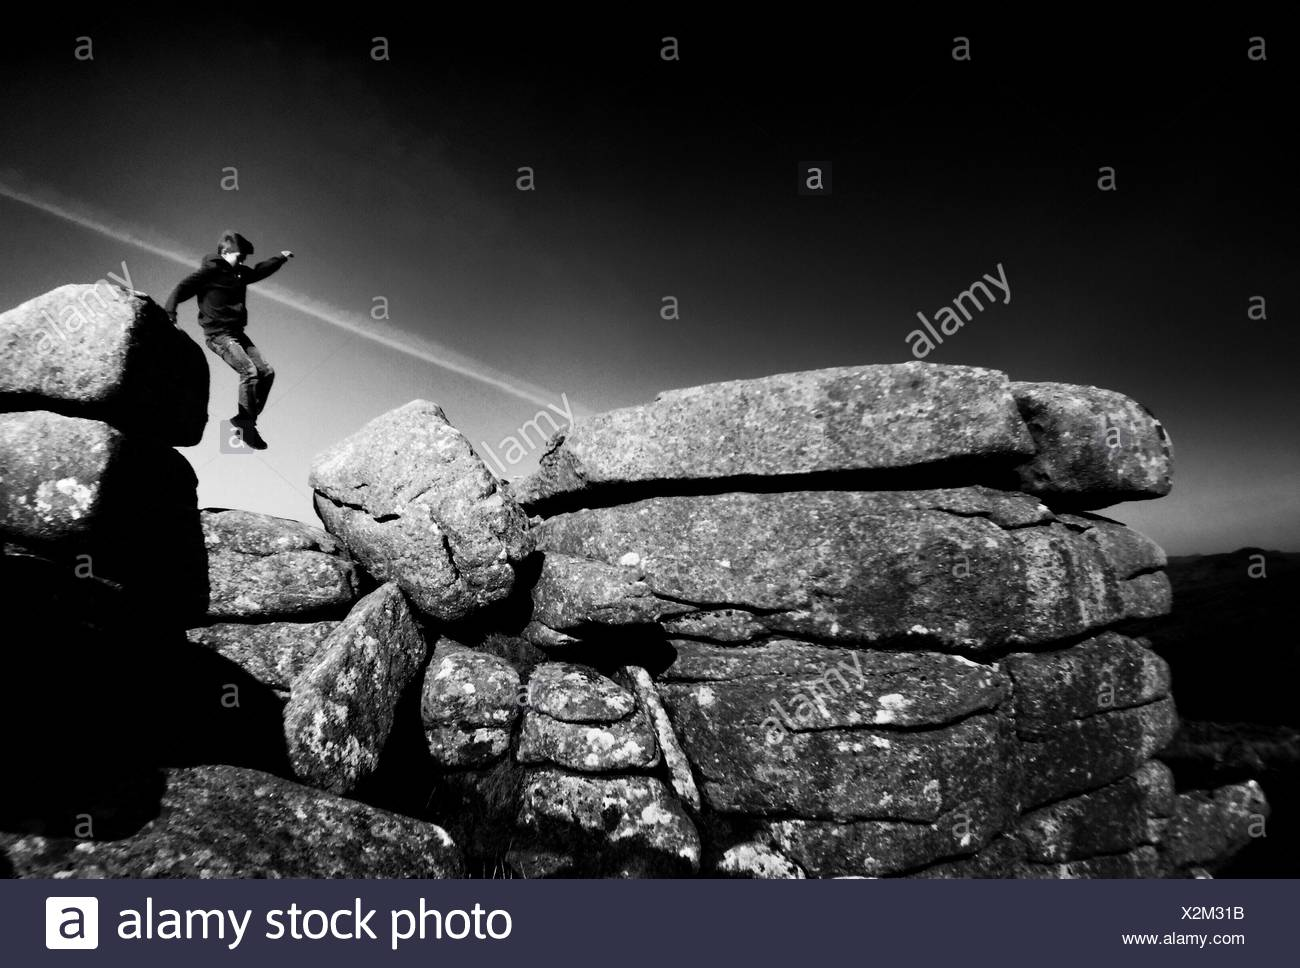 Boy Jumping Against Sky - Stock Image